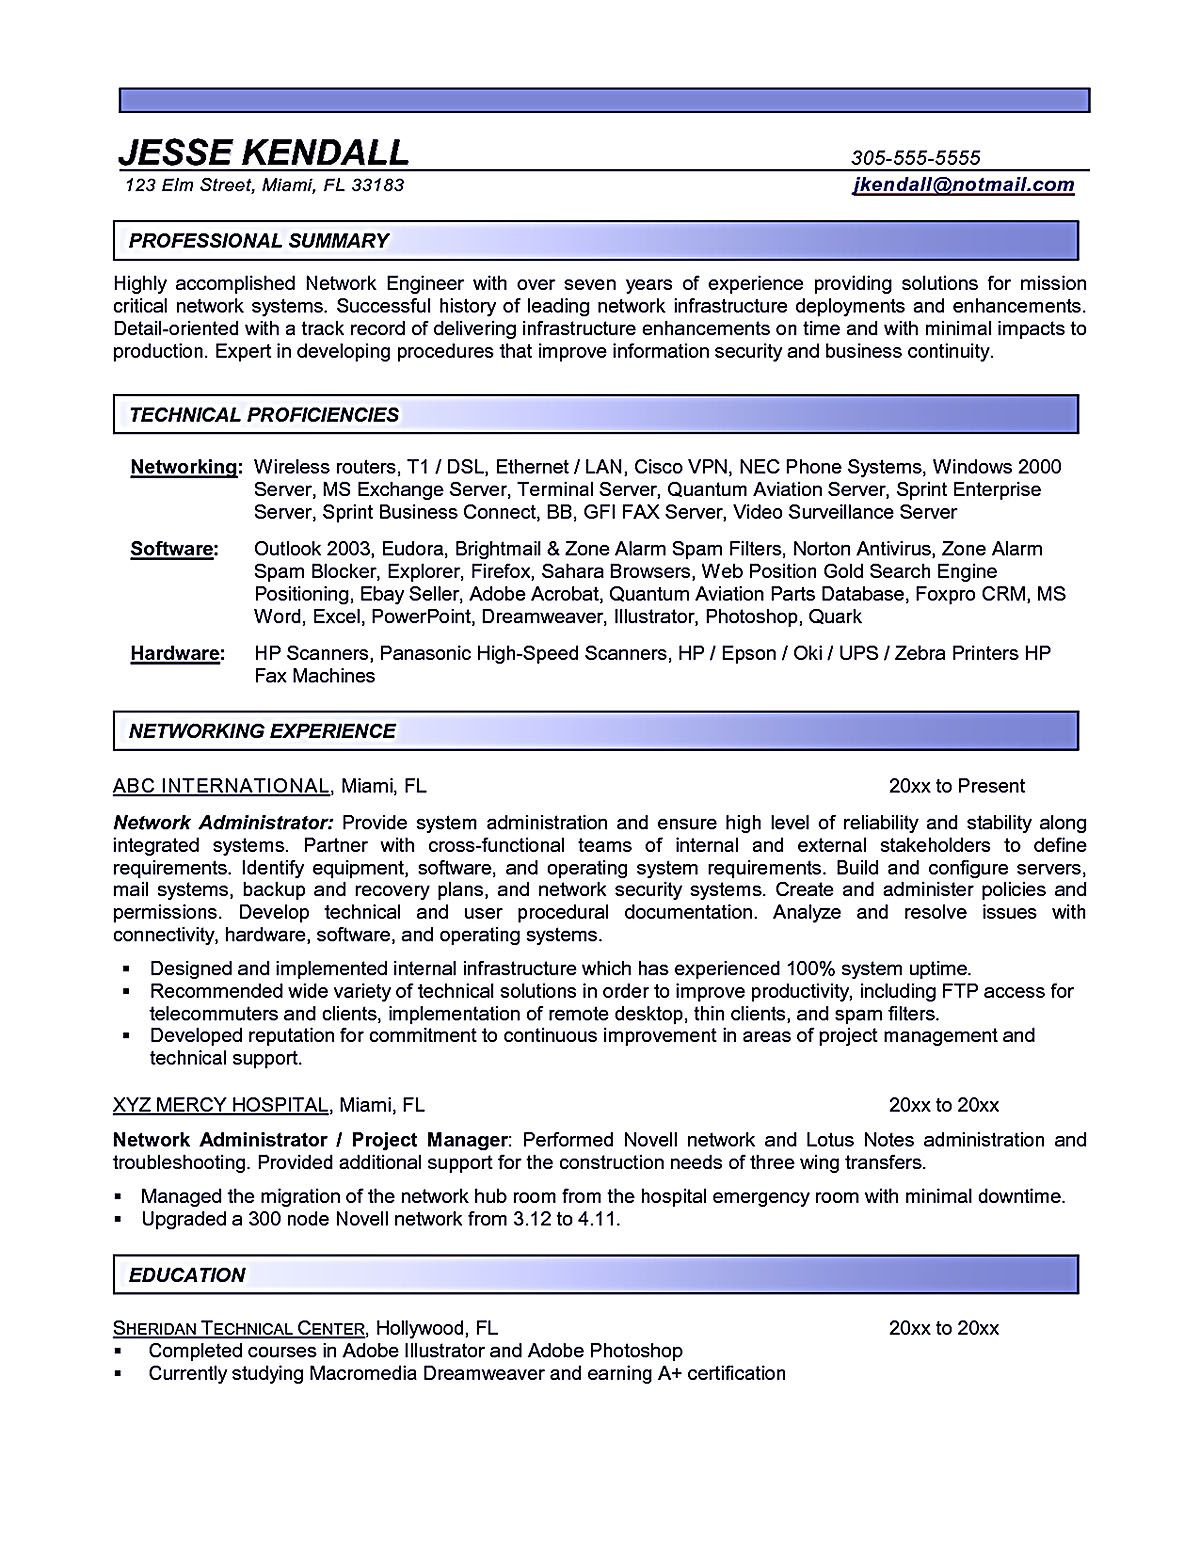 Account Receivable Resume Awesome Account Receivable Resume Shows Both Technical And Interpersonal .